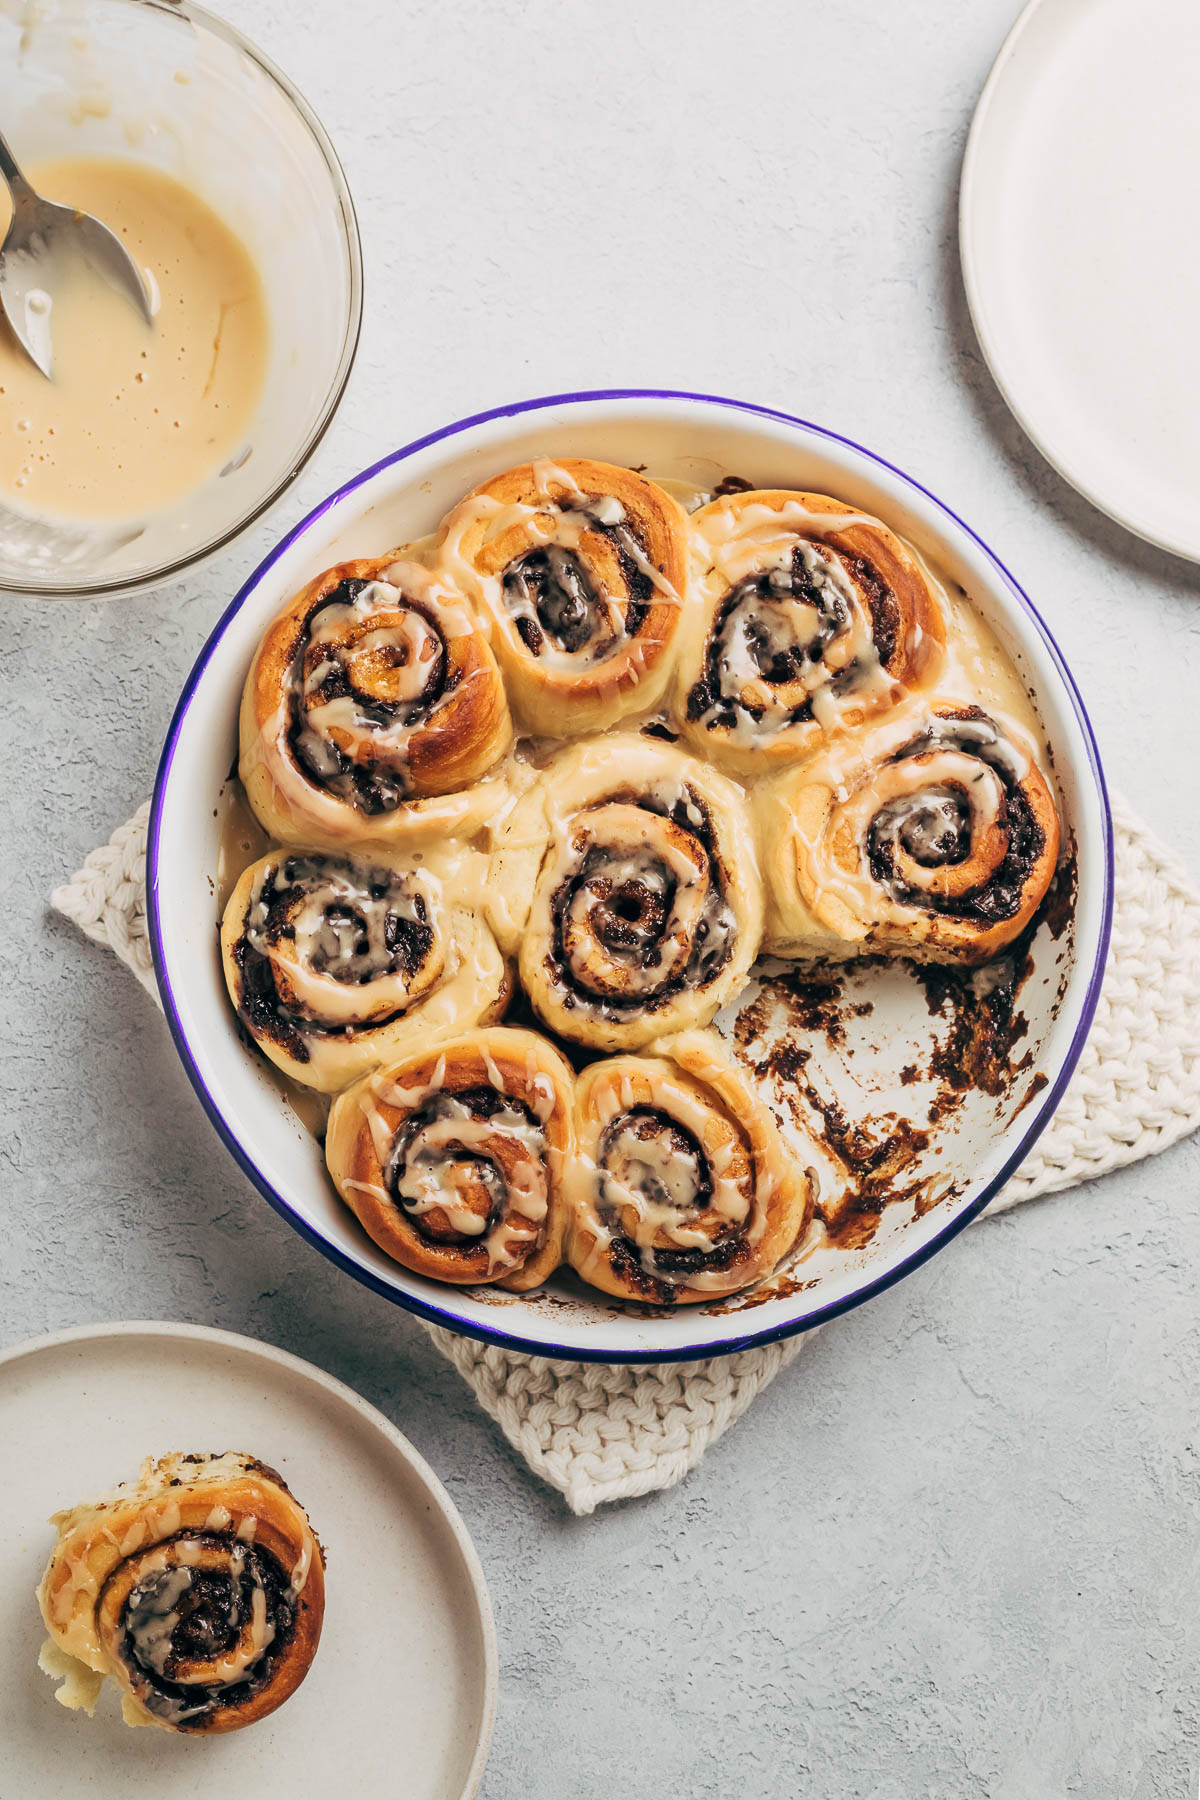 A baking tin full of baked cinnamon rolls topped with glaze.